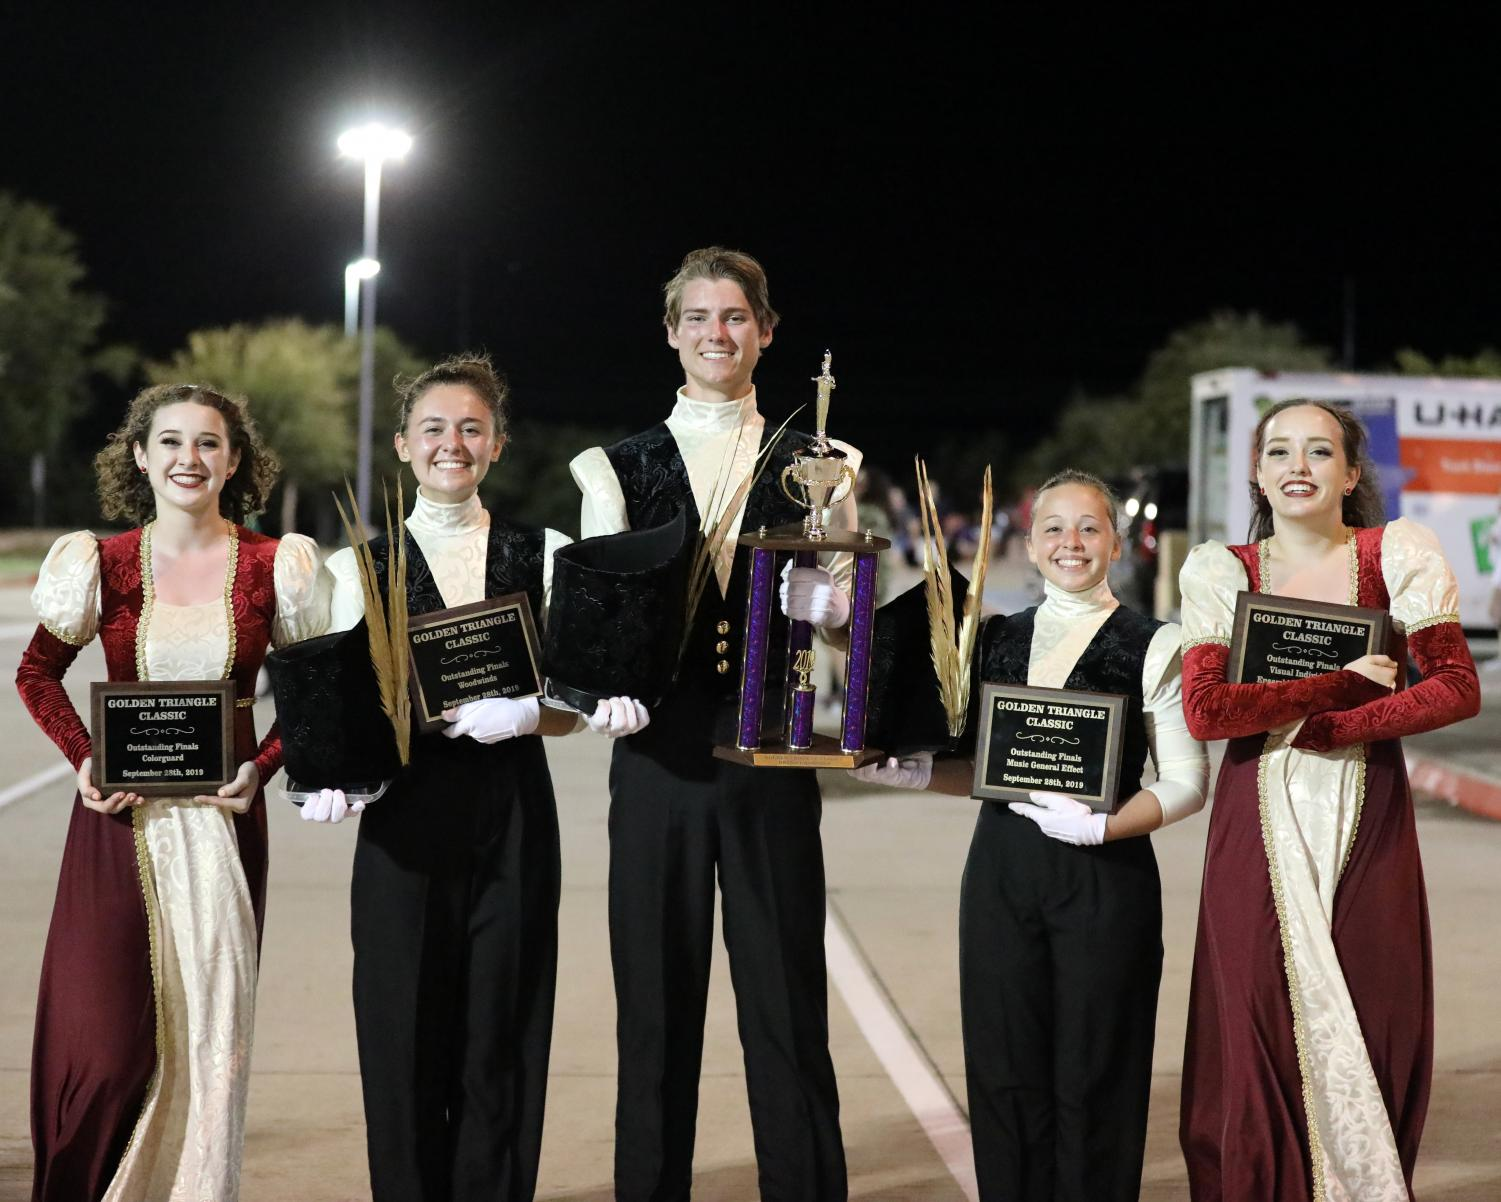 Guard Captain and junior Elise Bell, Drum Majors senior Lily Hager, senior Joe Harris, junior Catherine O'Brien, and Guard Lieutenant Jordan Sleeper smile outside the Golden Gate Triangle stadium after receiving the award for the first first place in the school's marching band history. The band also won the captions for colorguard, woodwinds, music general effect, and visual individual performance on that day, Sept. 28.